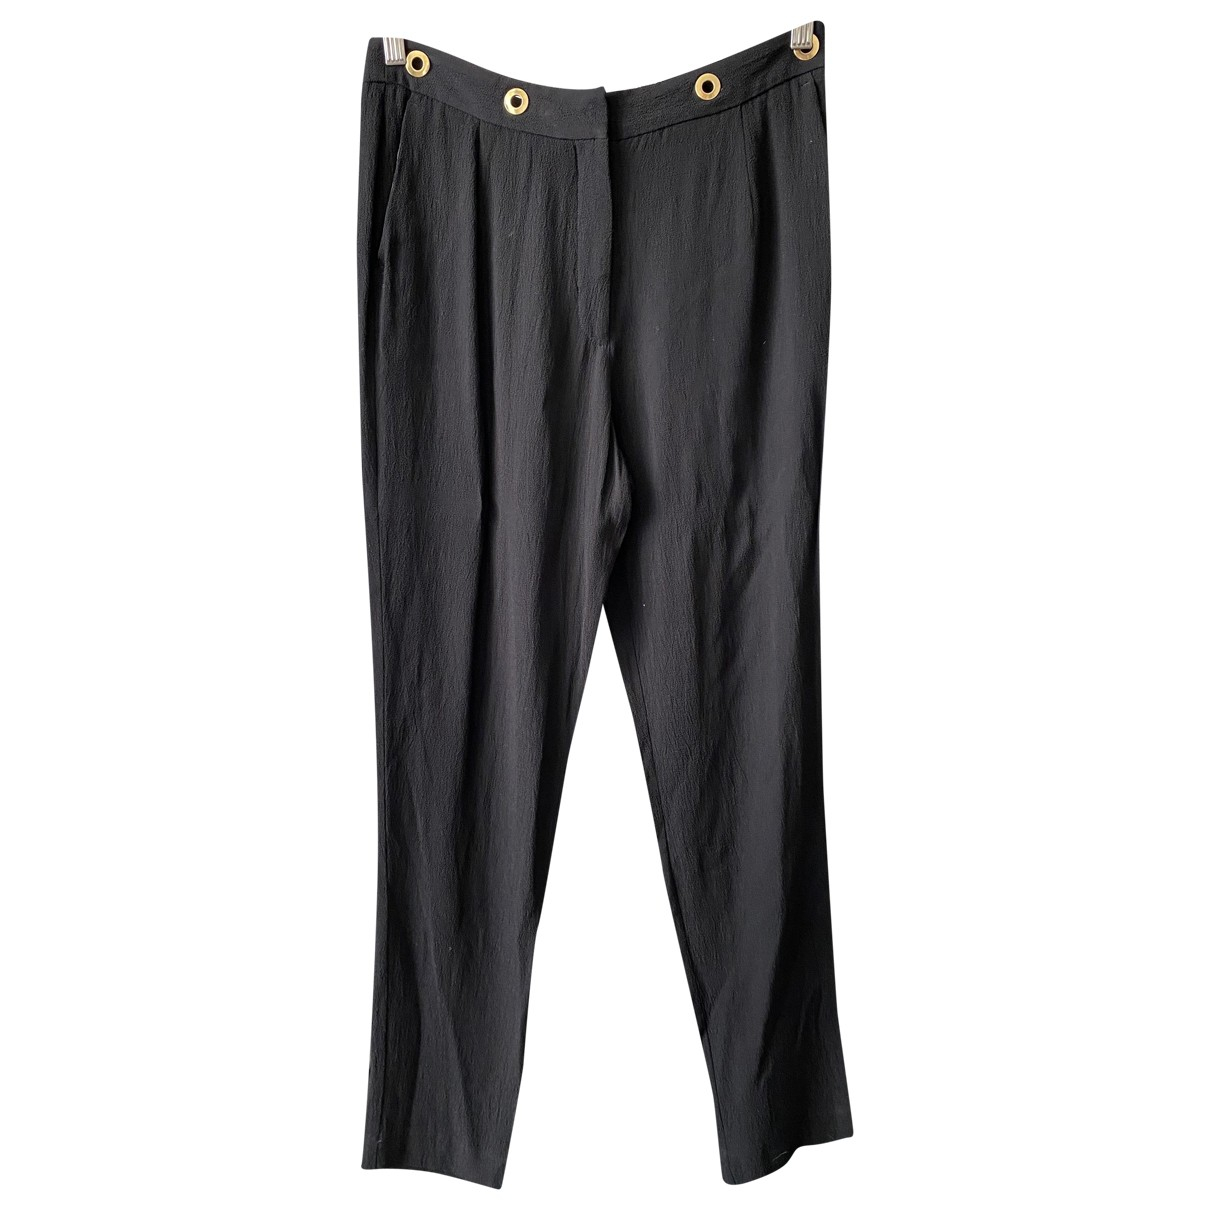 Sandro \N Black Trousers for Women 40 FR